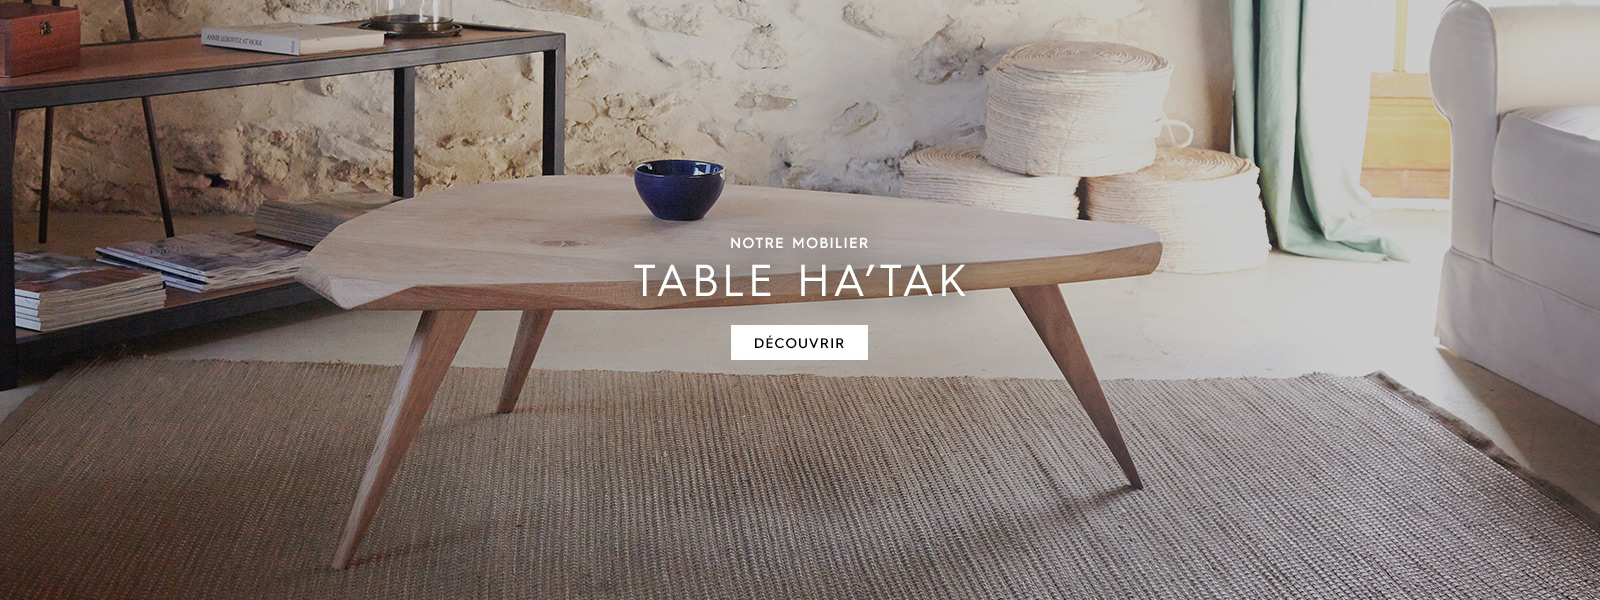 hp-1600x600-table-hatak